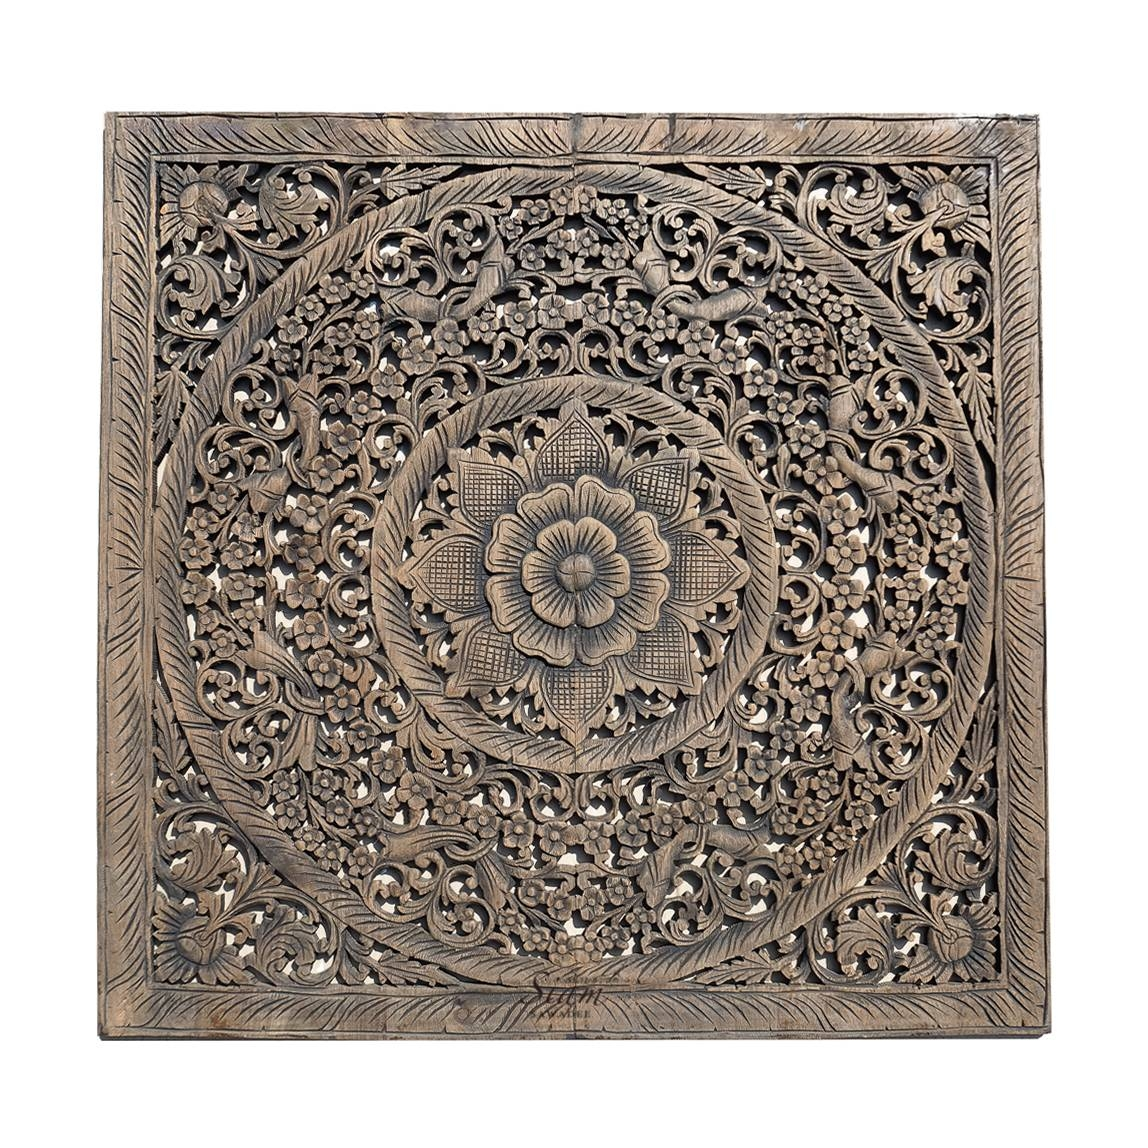 Balinese Antique Wood Carving Wall Art Panel – Siam Sawadee Intended For Latest Balinese Wall Art (View 3 of 30)